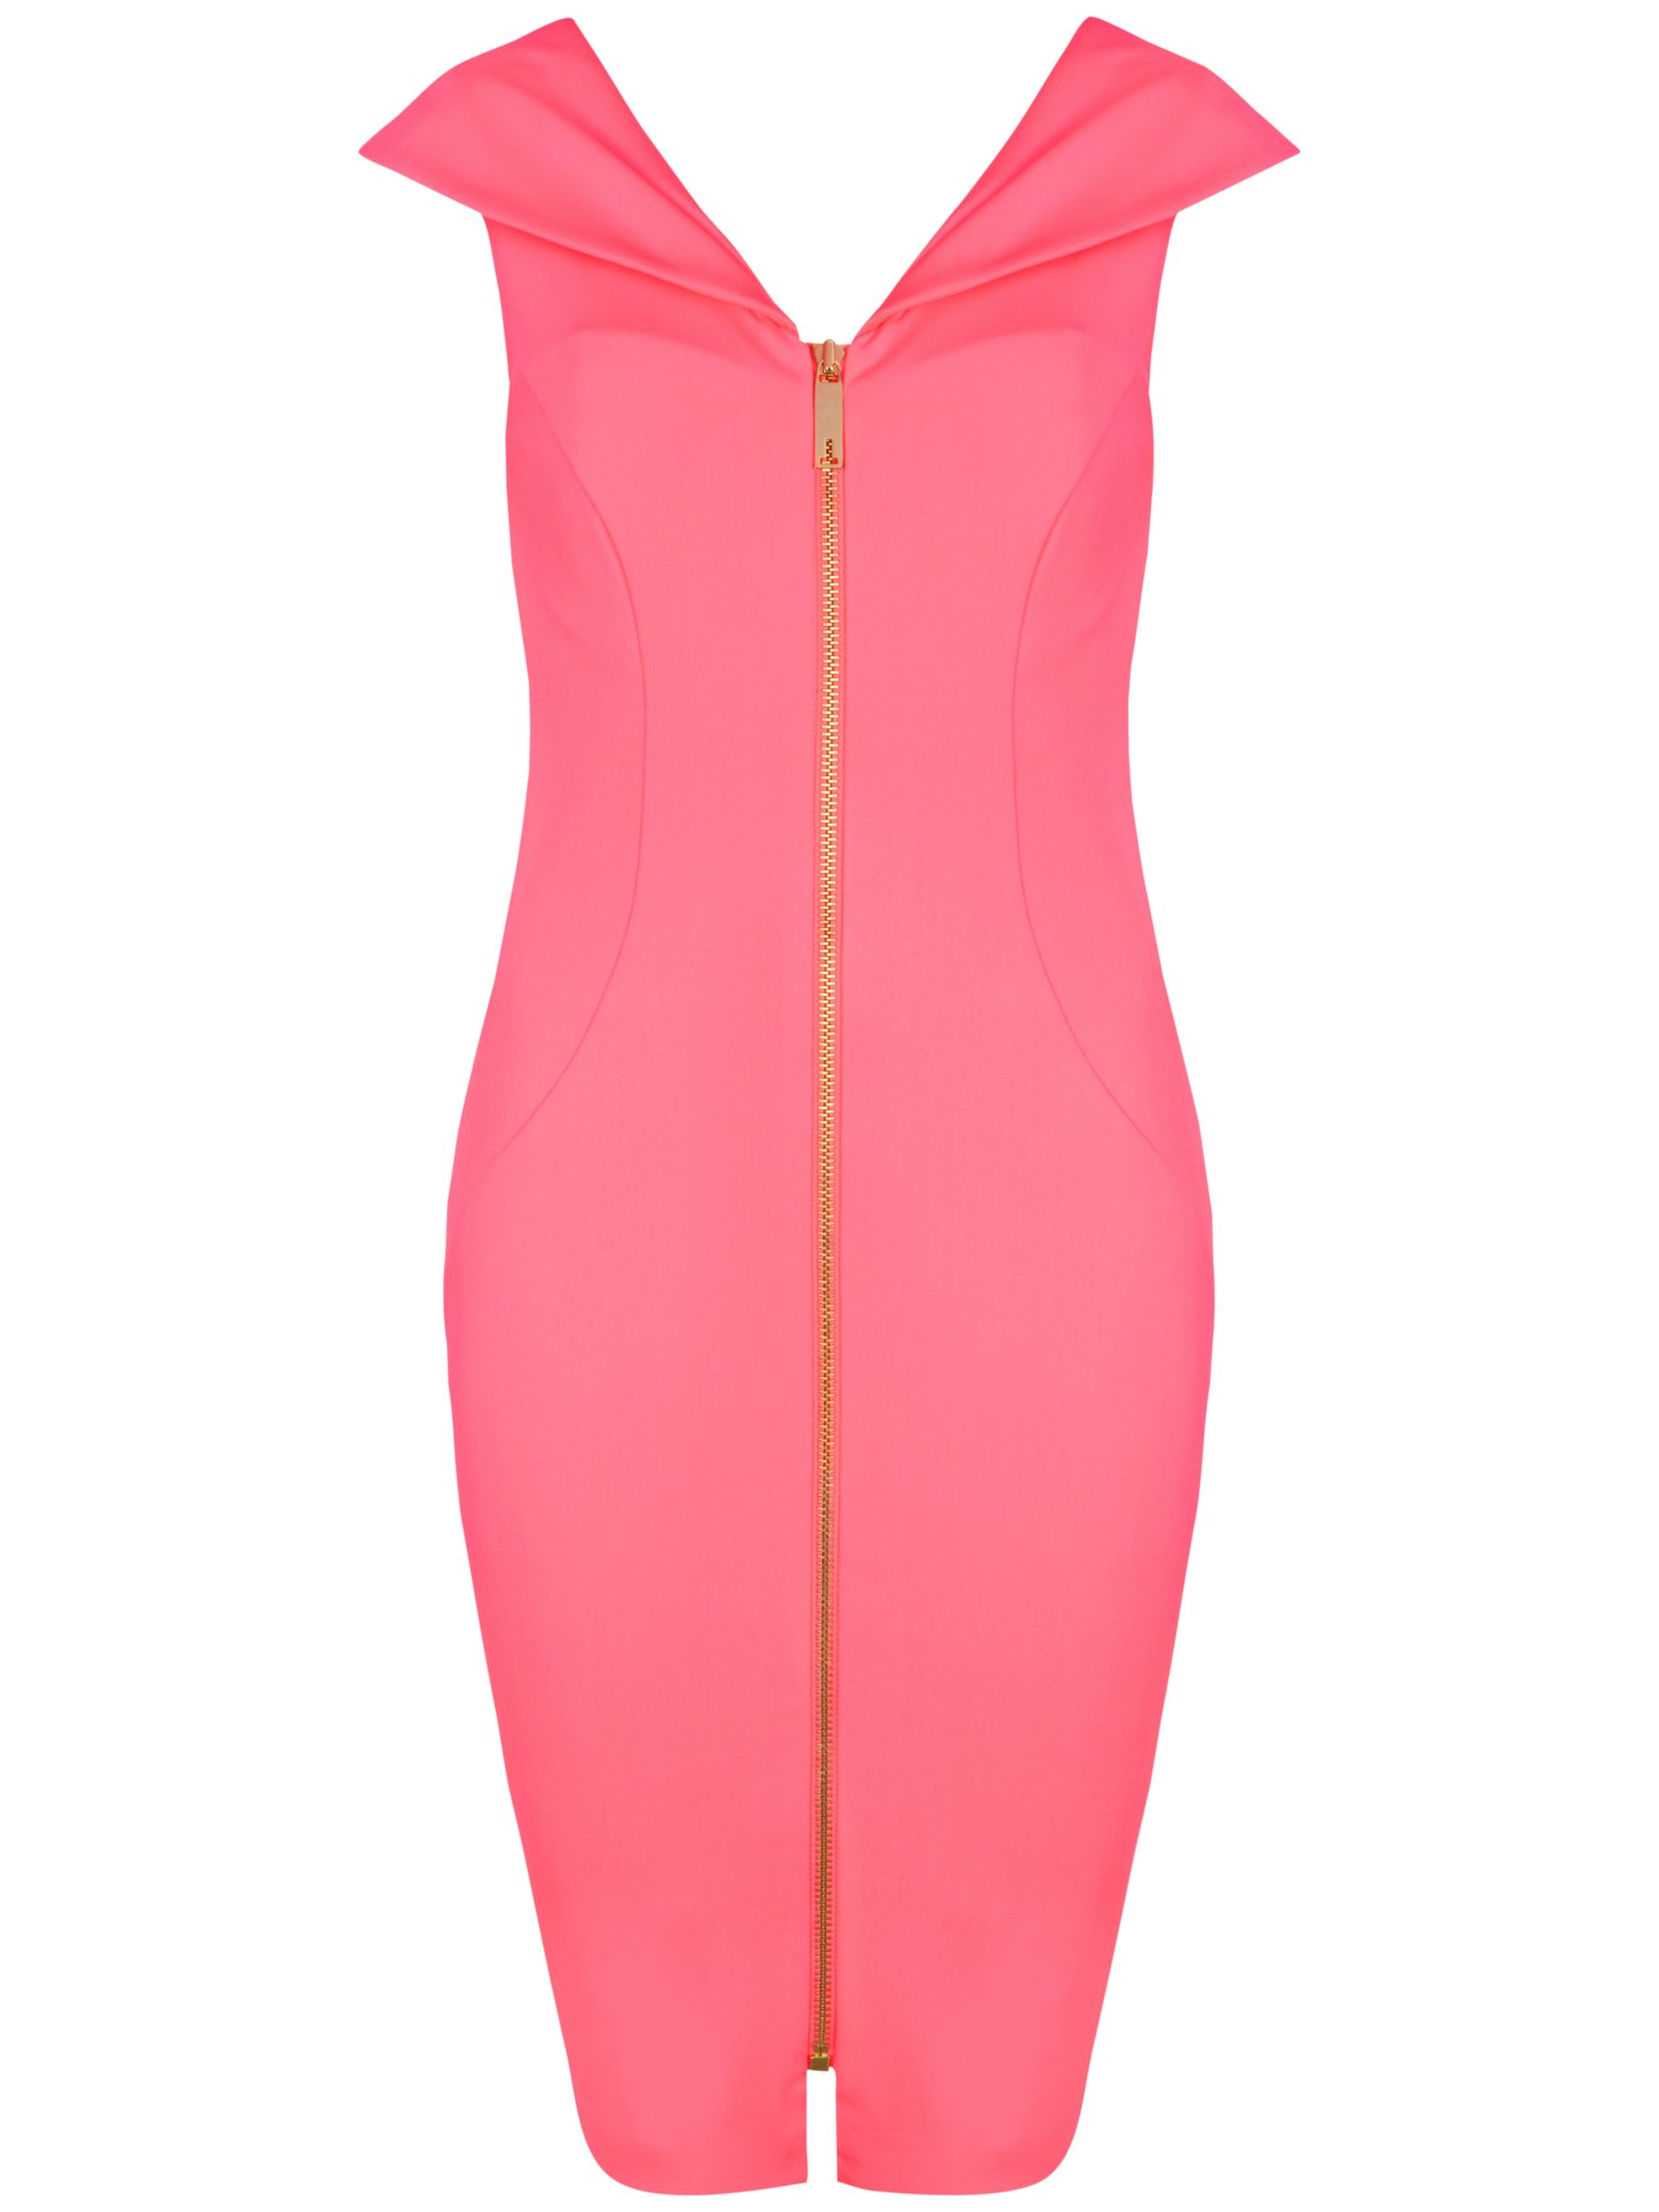 ted baker ravana bodycon dress coral, ted, baker, ravana, bodycon, dress, coral, ted baker, 3|1|2|4|5|0, women, womens dresses, gifts, wedding, wedding clothing, female guests, fashion magazine, womenswear, men, brands l-z, 1937621